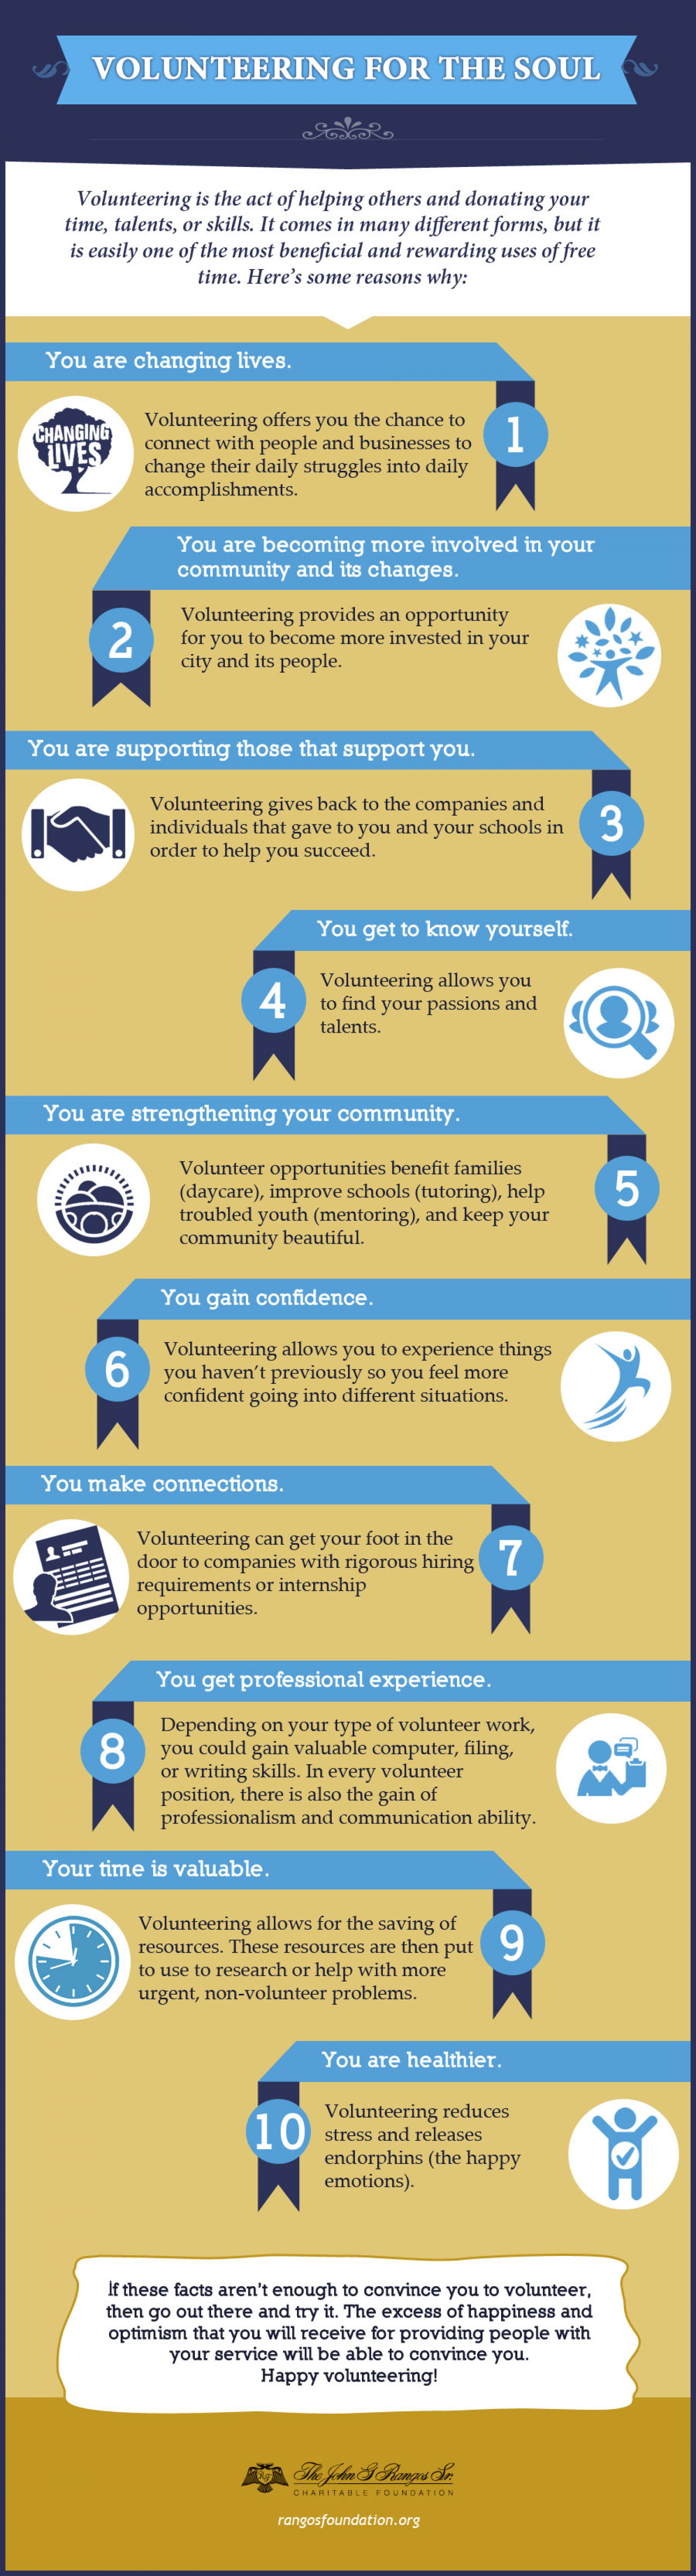 Volunteering for the Soul  Infographic